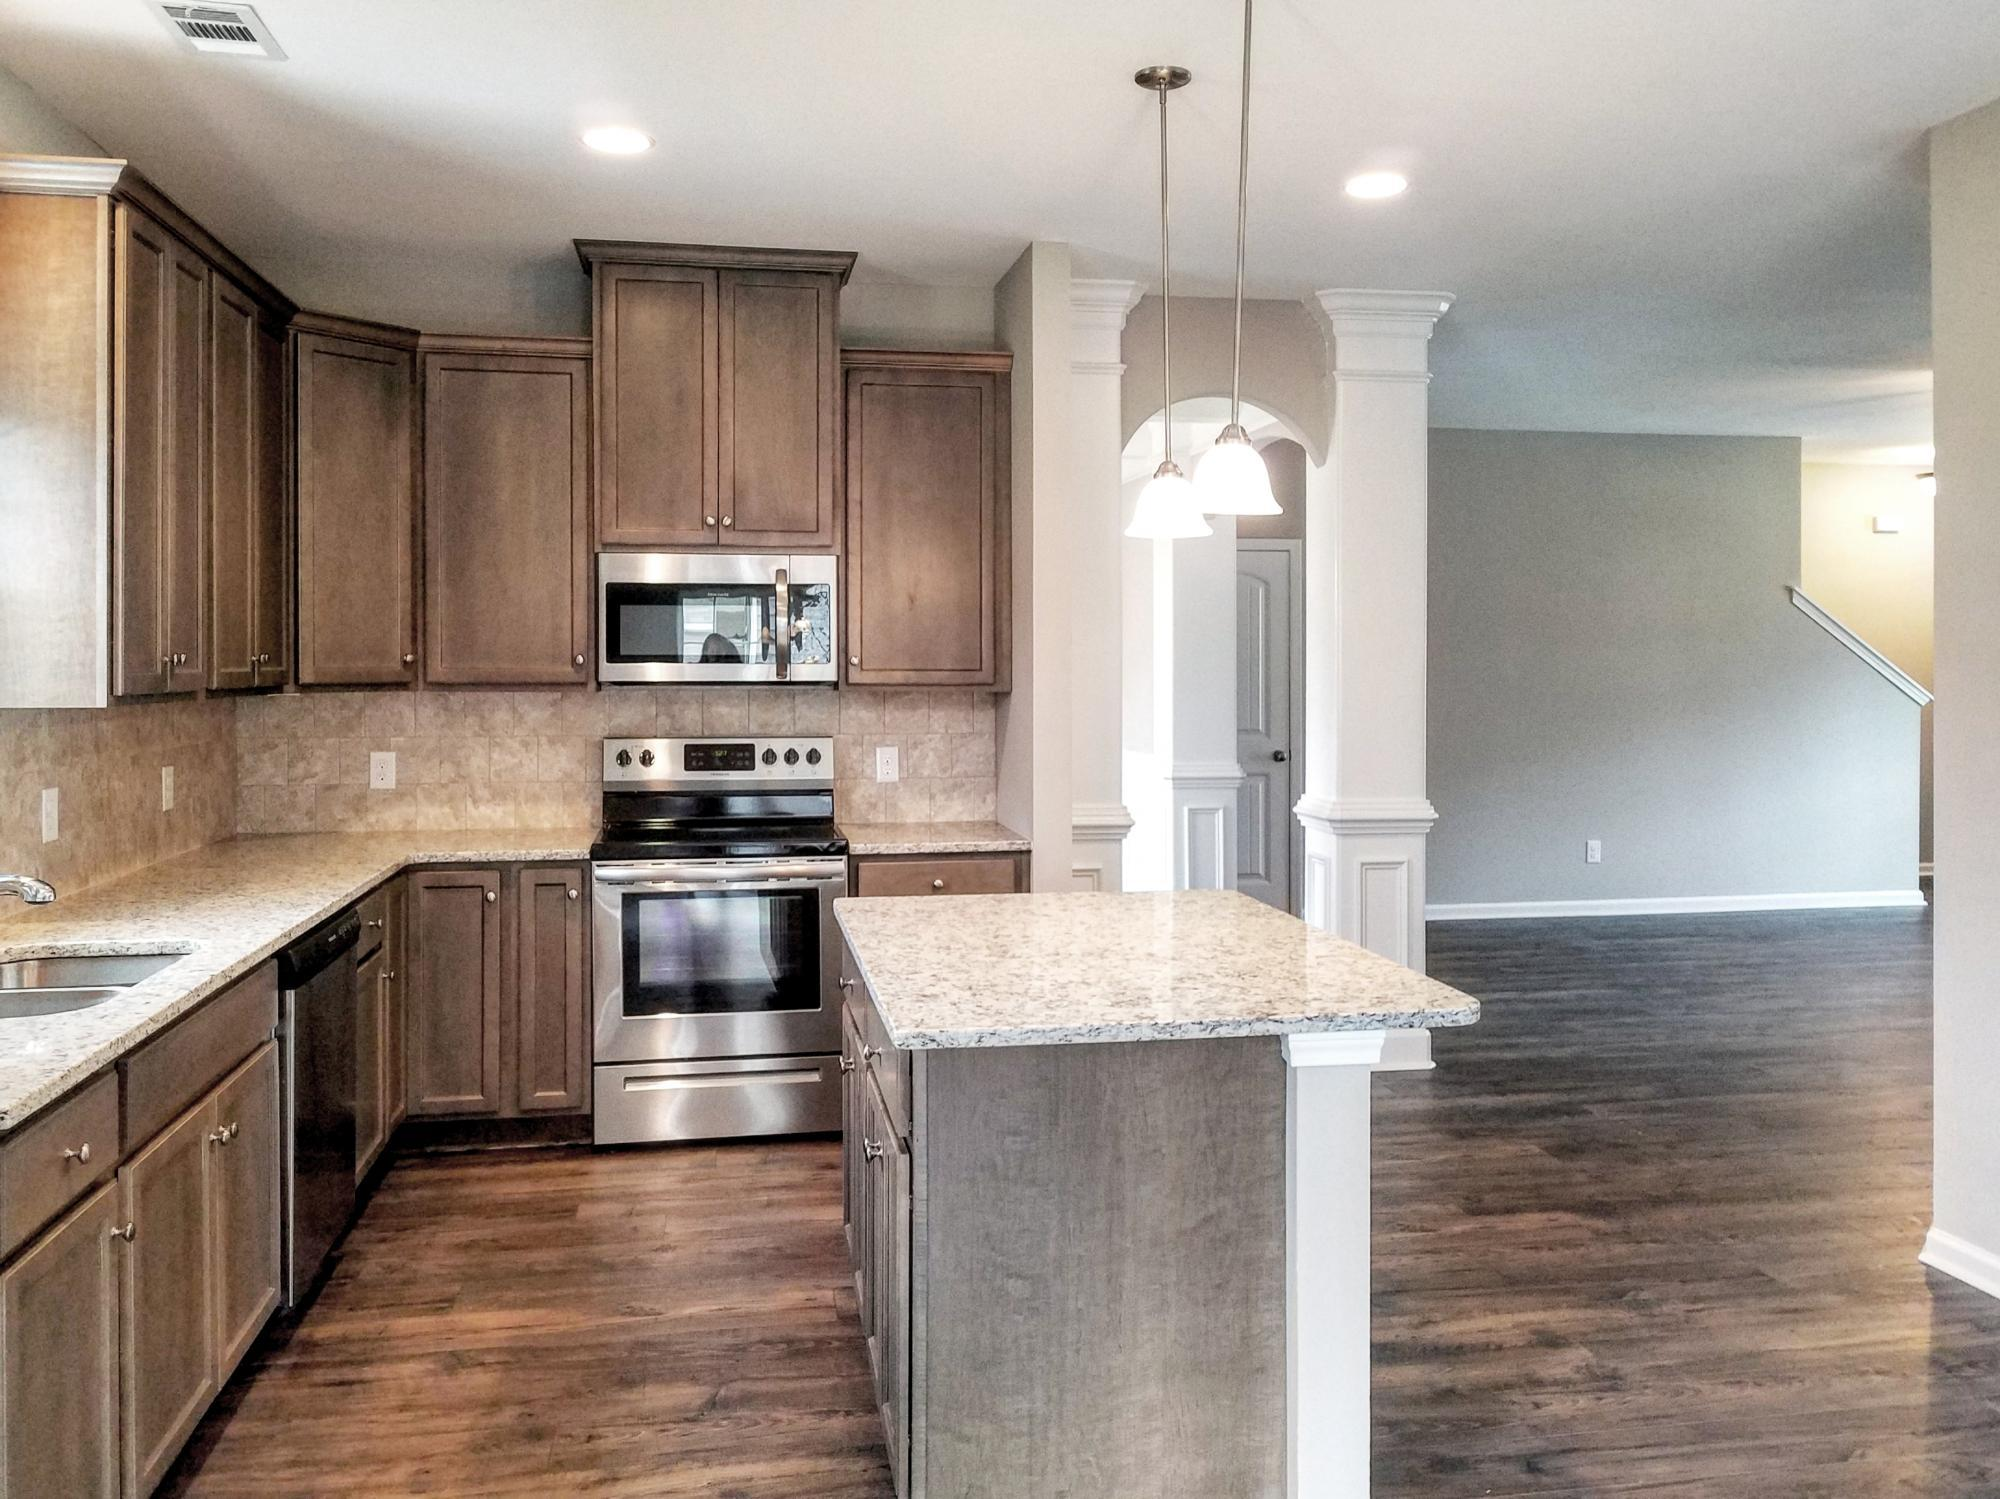 Kitchen featured in the Franklin By Konter Quality Homes in Savannah, GA